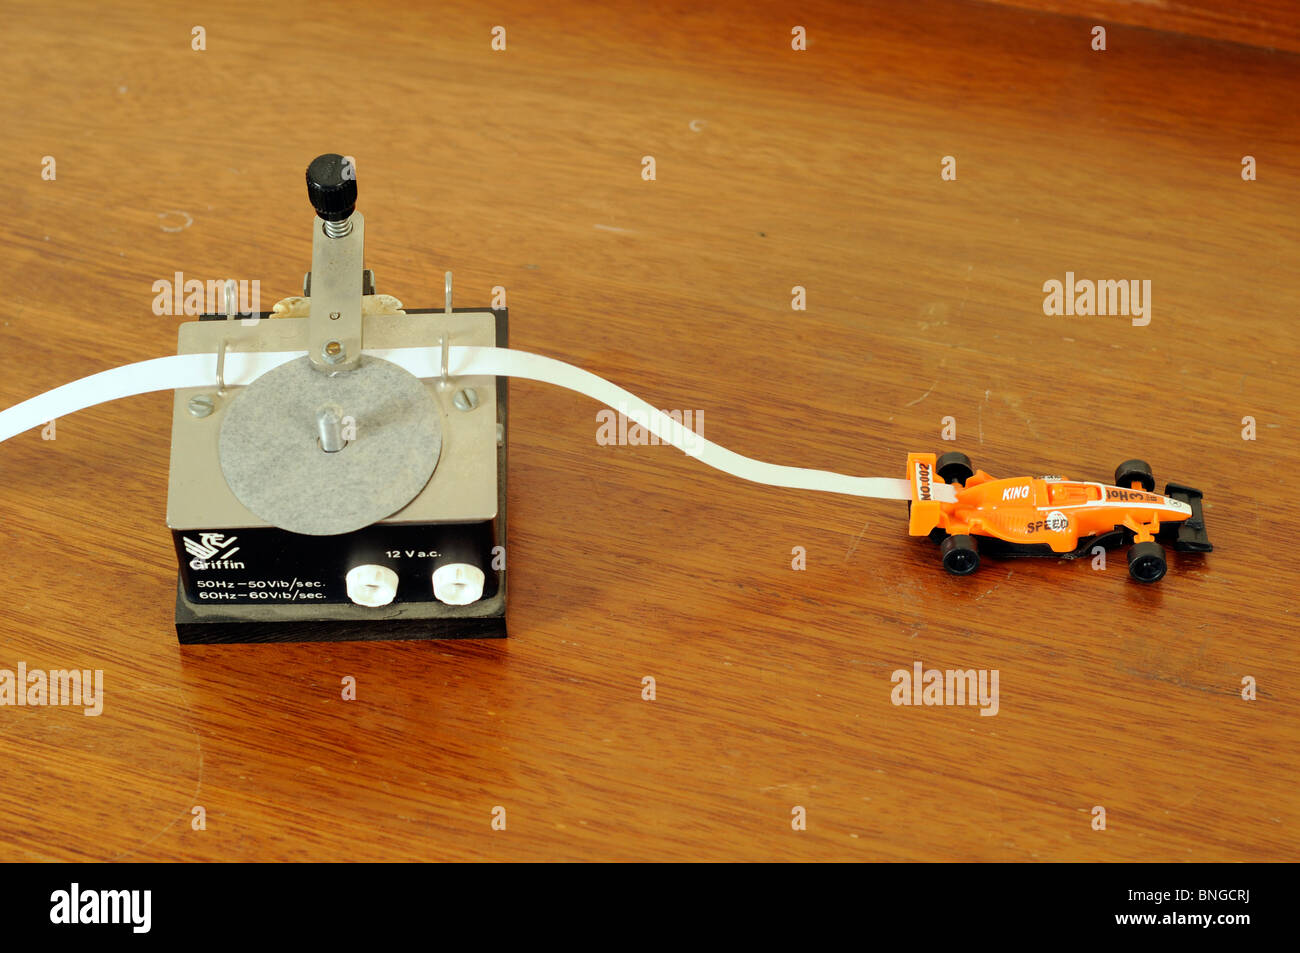 Ticker tape timer and model racing car. - Stock Image